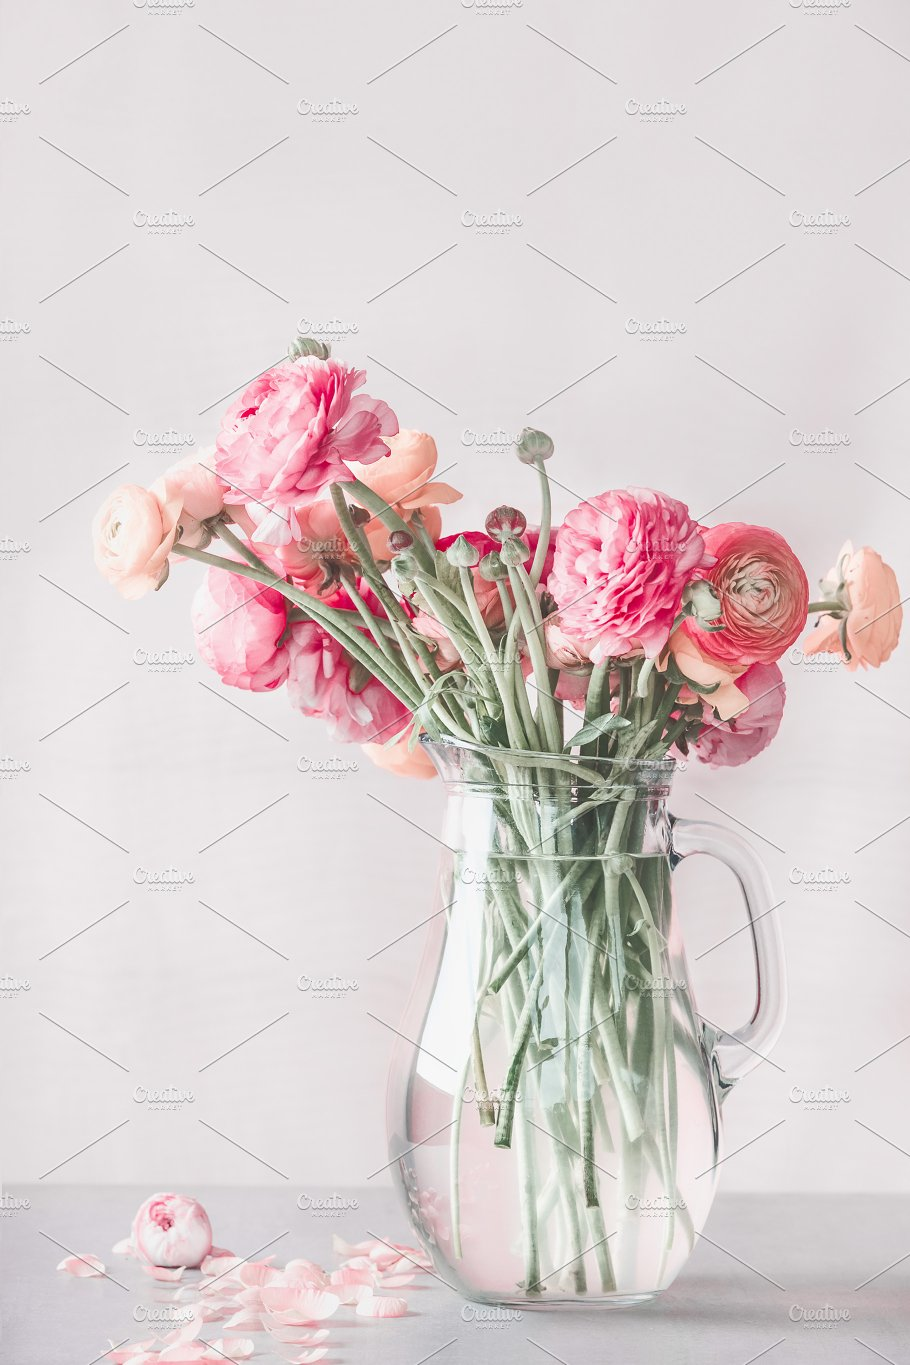 Pastel pink flowers in glass vase arts entertainment photos pastel pink flowers in glass vase arts entertainment reviewsmspy